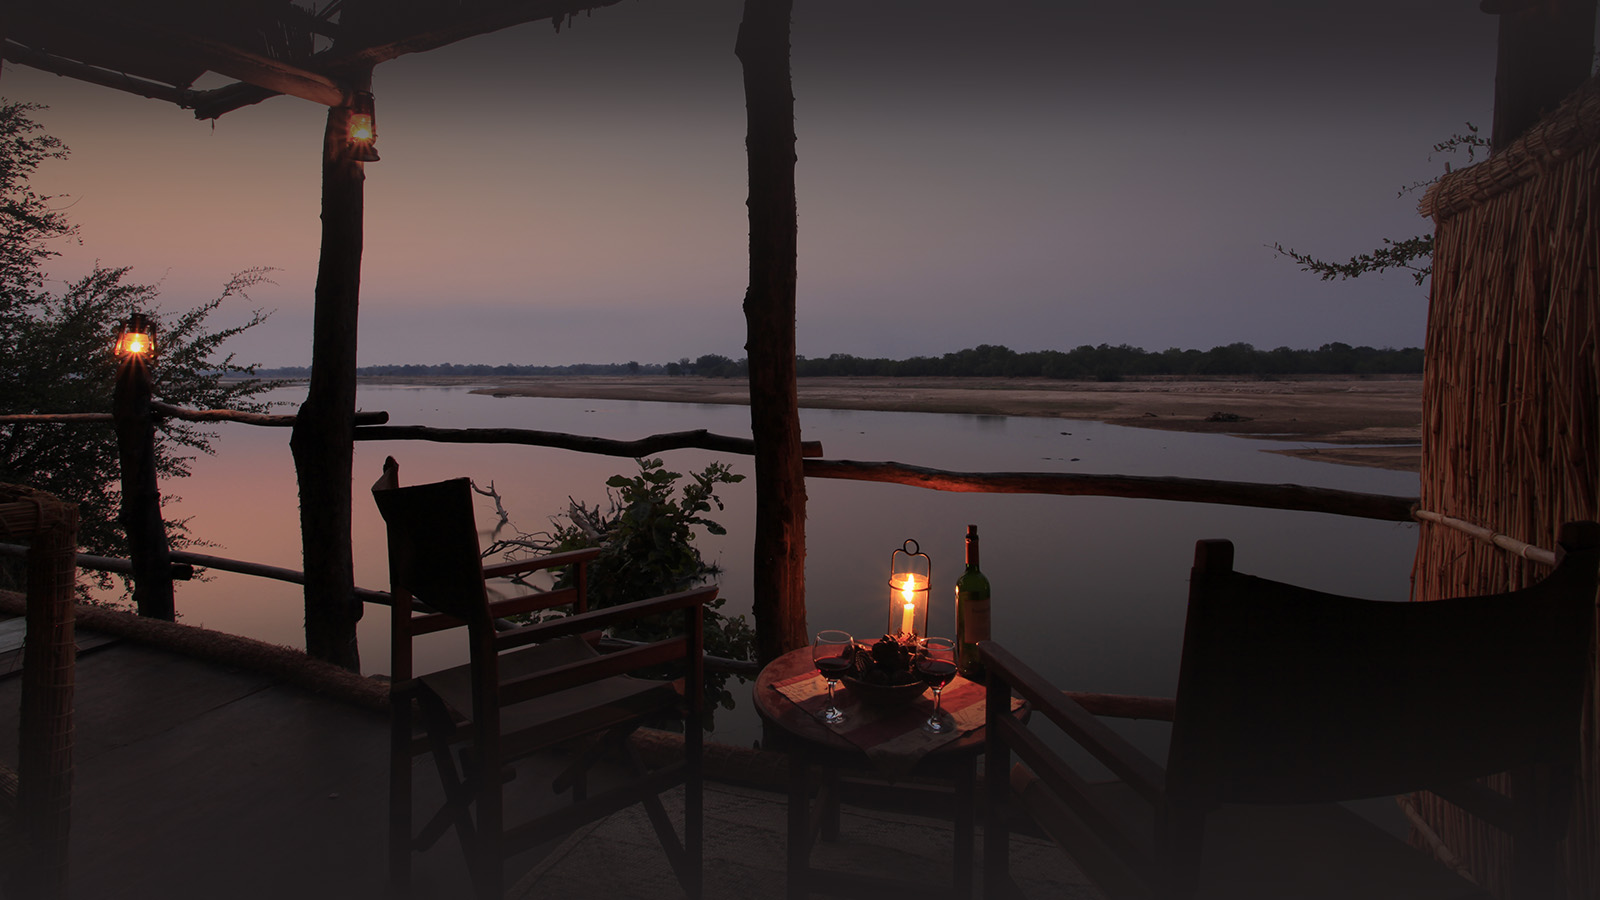 island bush camp lodge-zambia-in-style-safari-packages-south-luangwa-room-views-eveing-sky